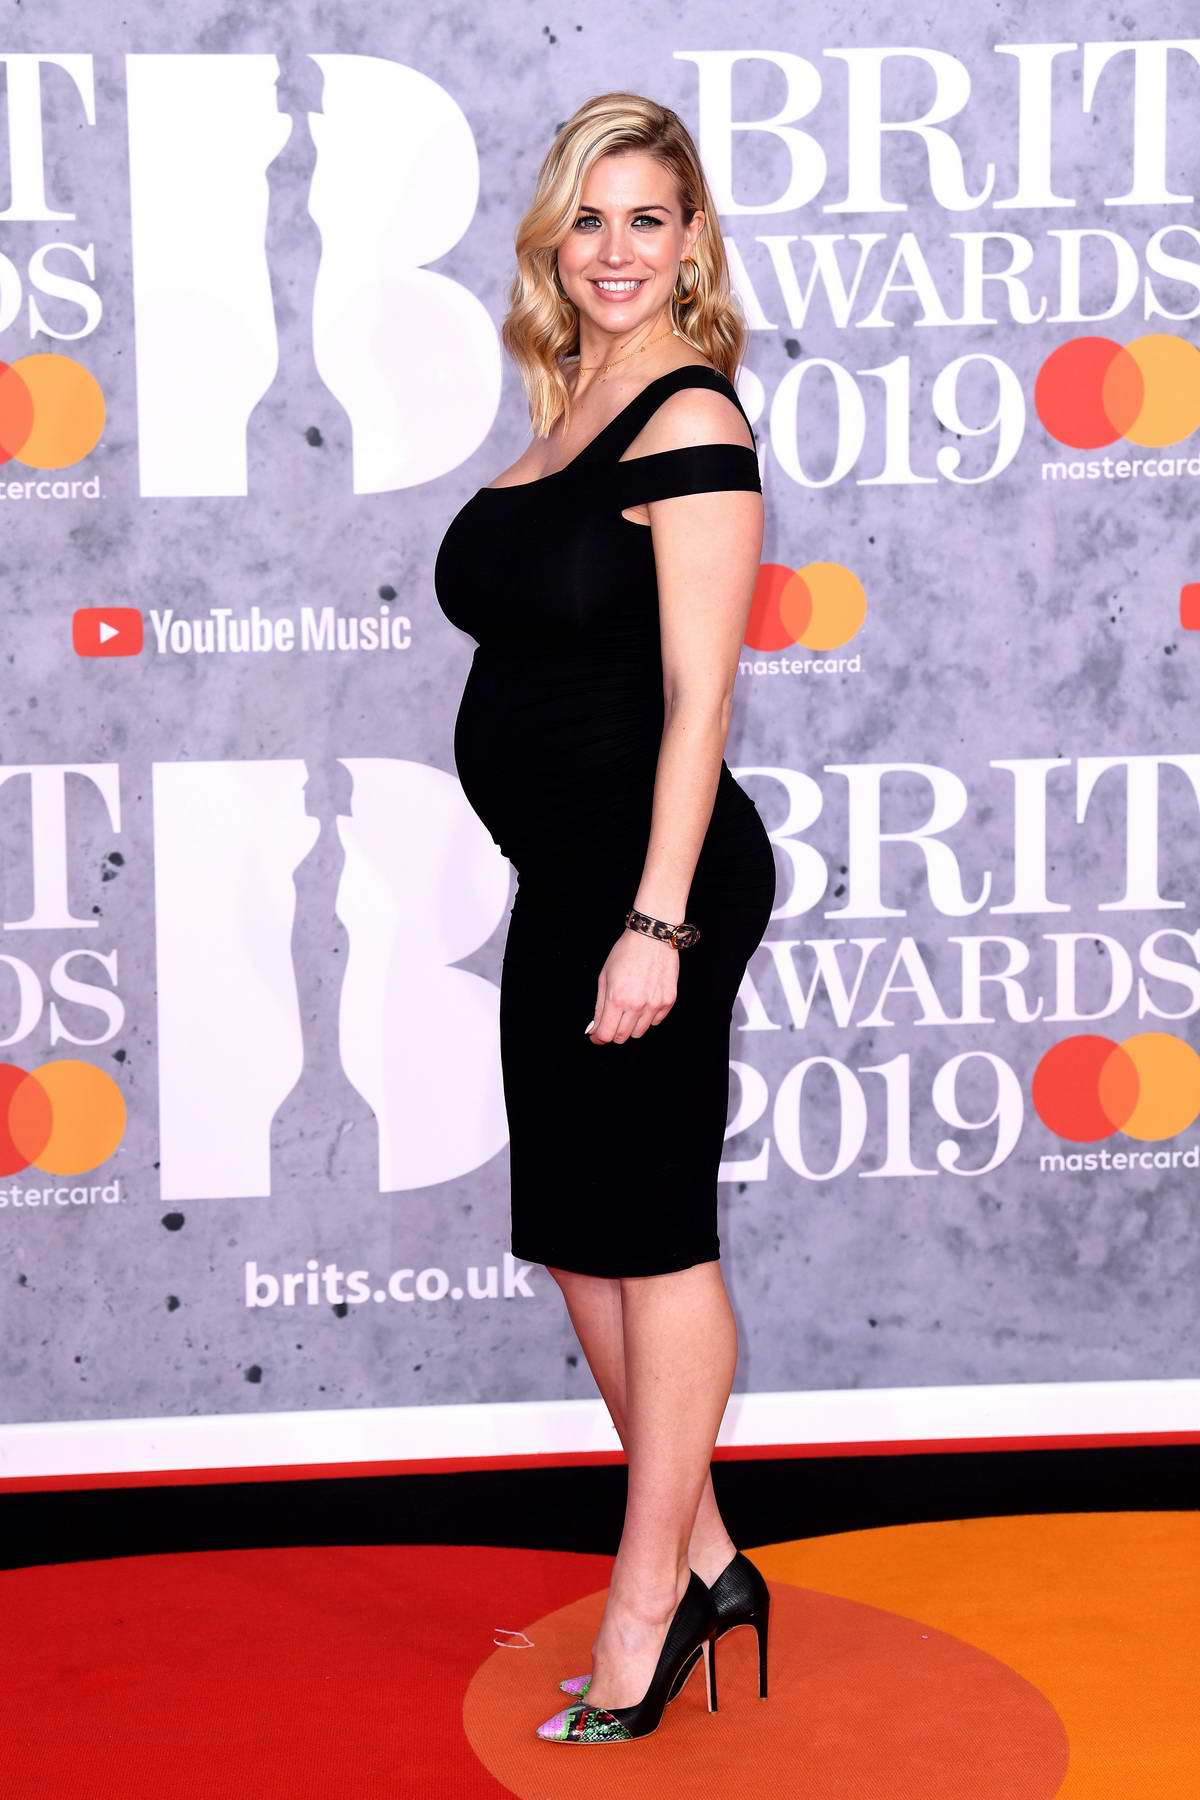 Gemma Atkinson attends The BRIT Awards 2019 held at The O2 Arena in London, UK